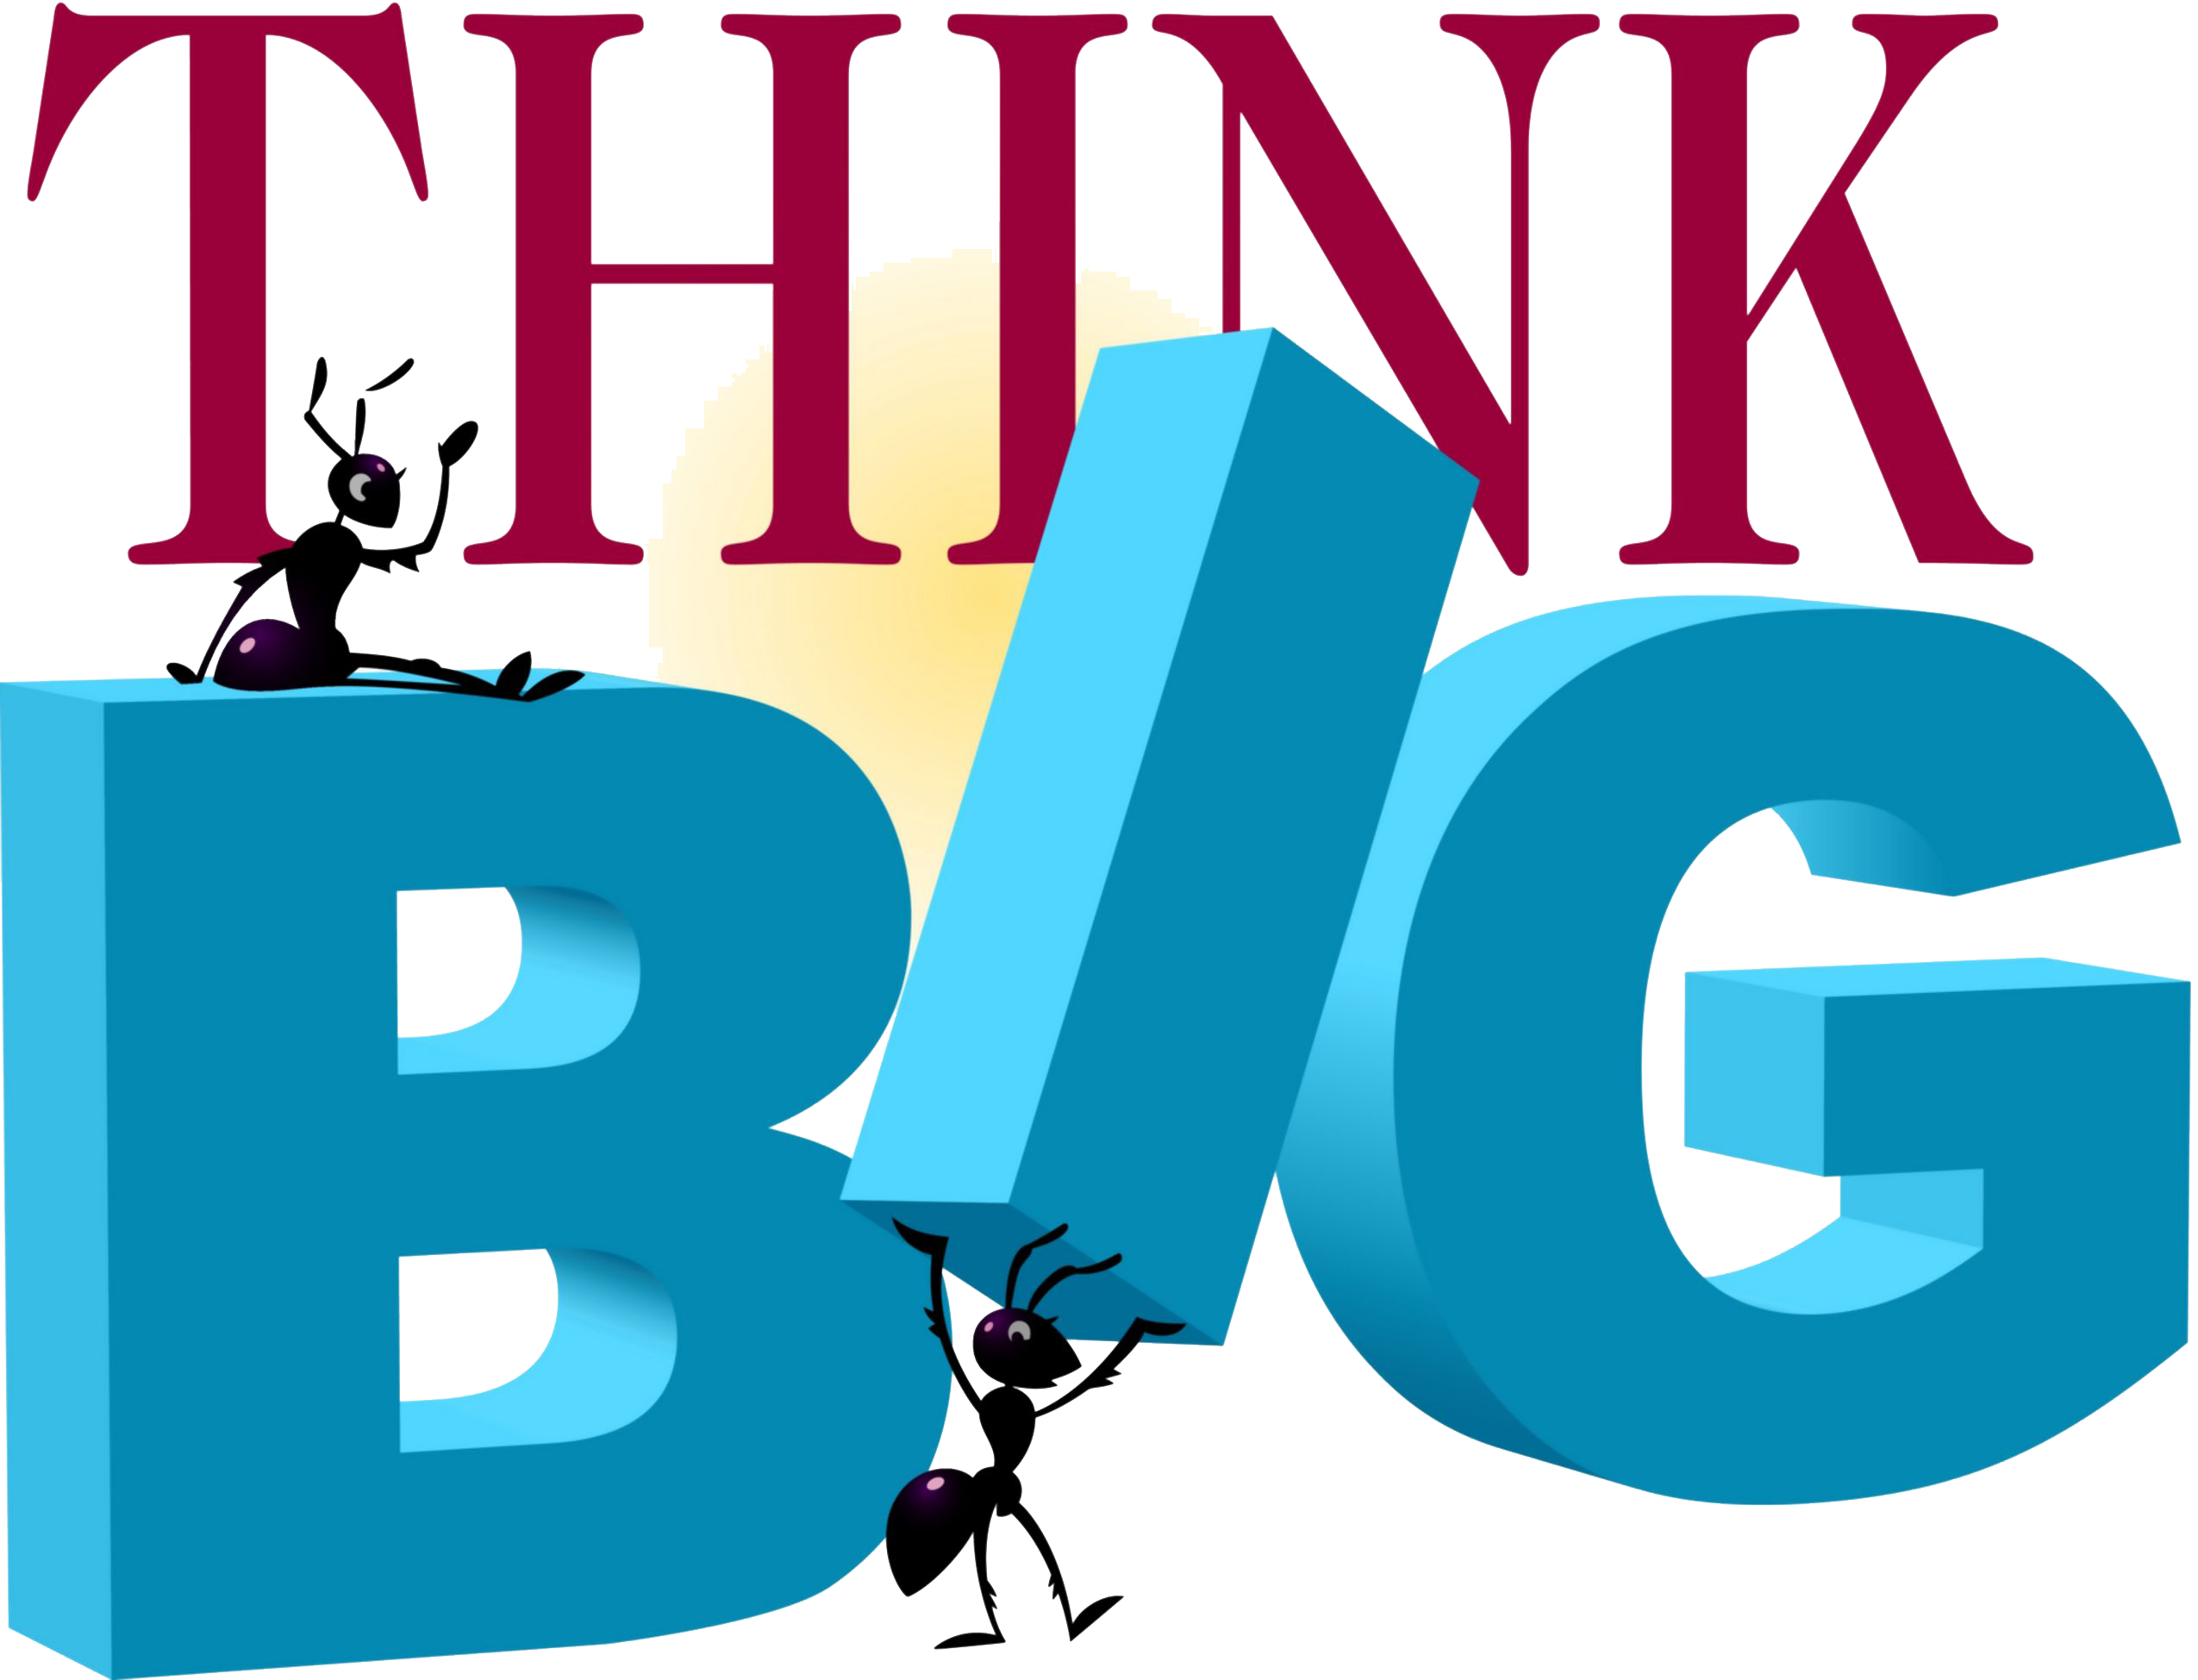 Thinking is one of the greatest abilities given. When we think, it causes  us to be creative. Have you ever thought yourself happy? - Think Big PNG